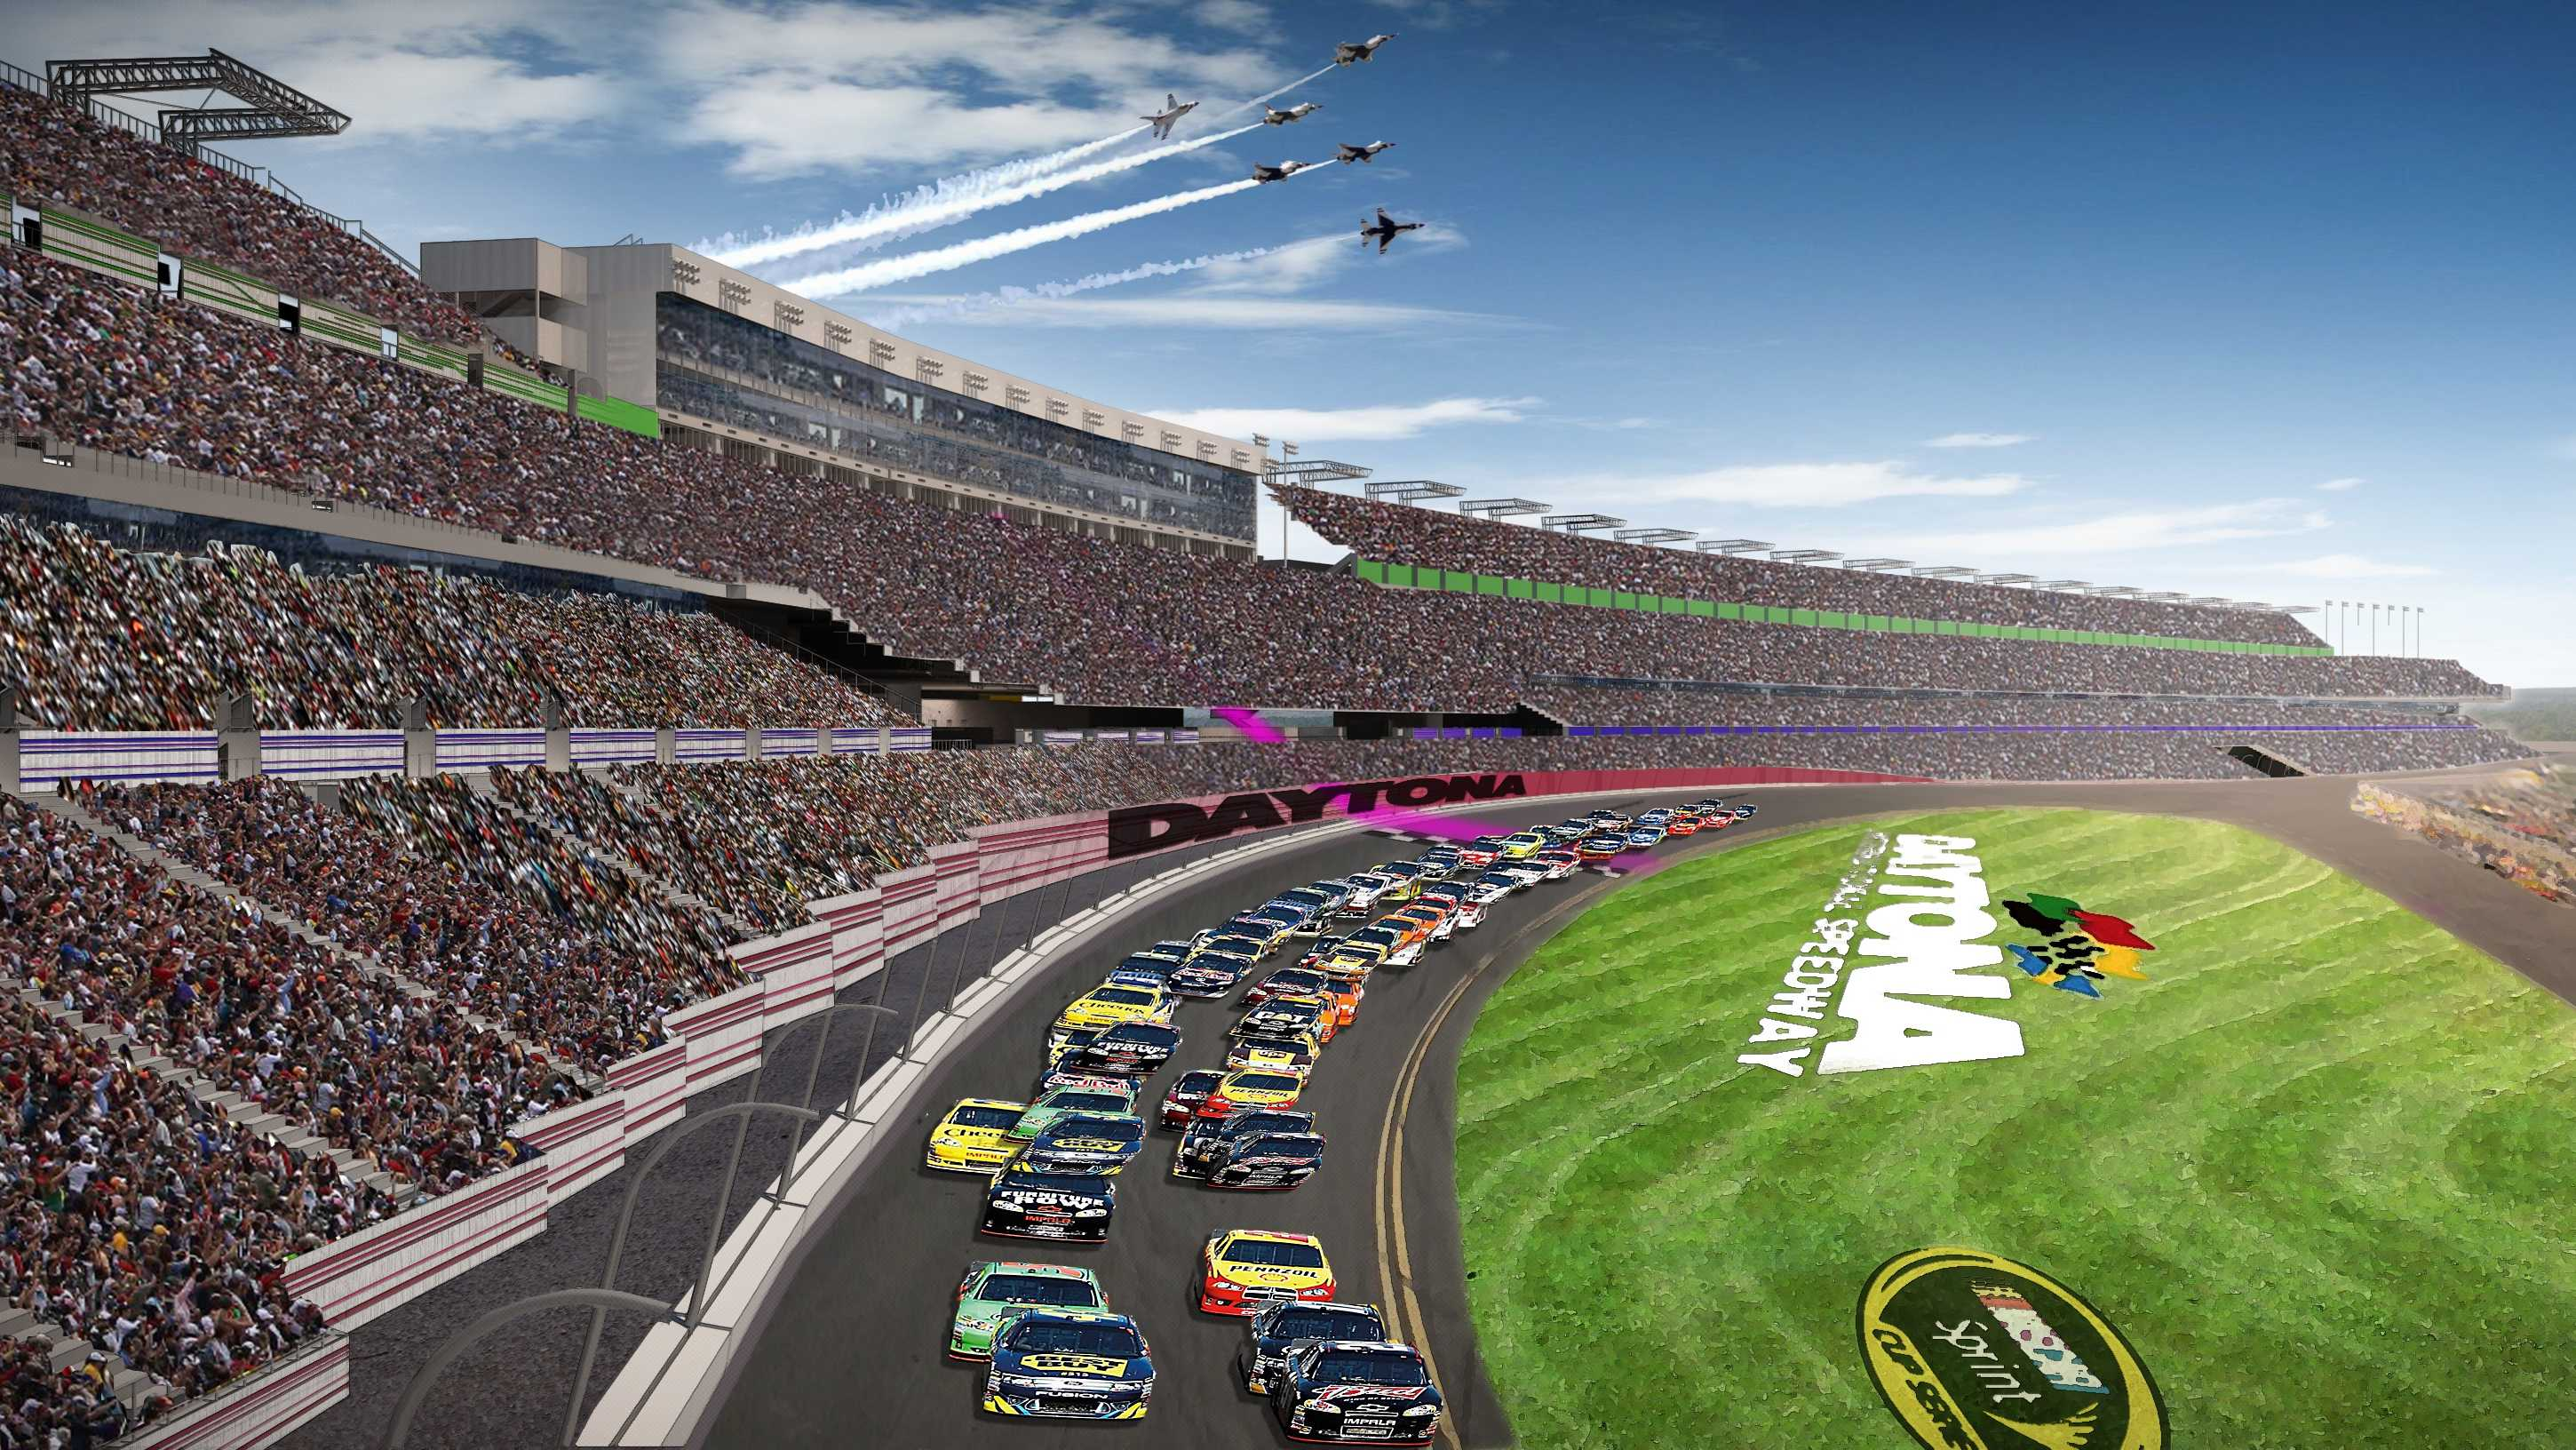 Officials with Daytona International Speedway revealed the first concept drawings of the proposed redevelopment of the facility.